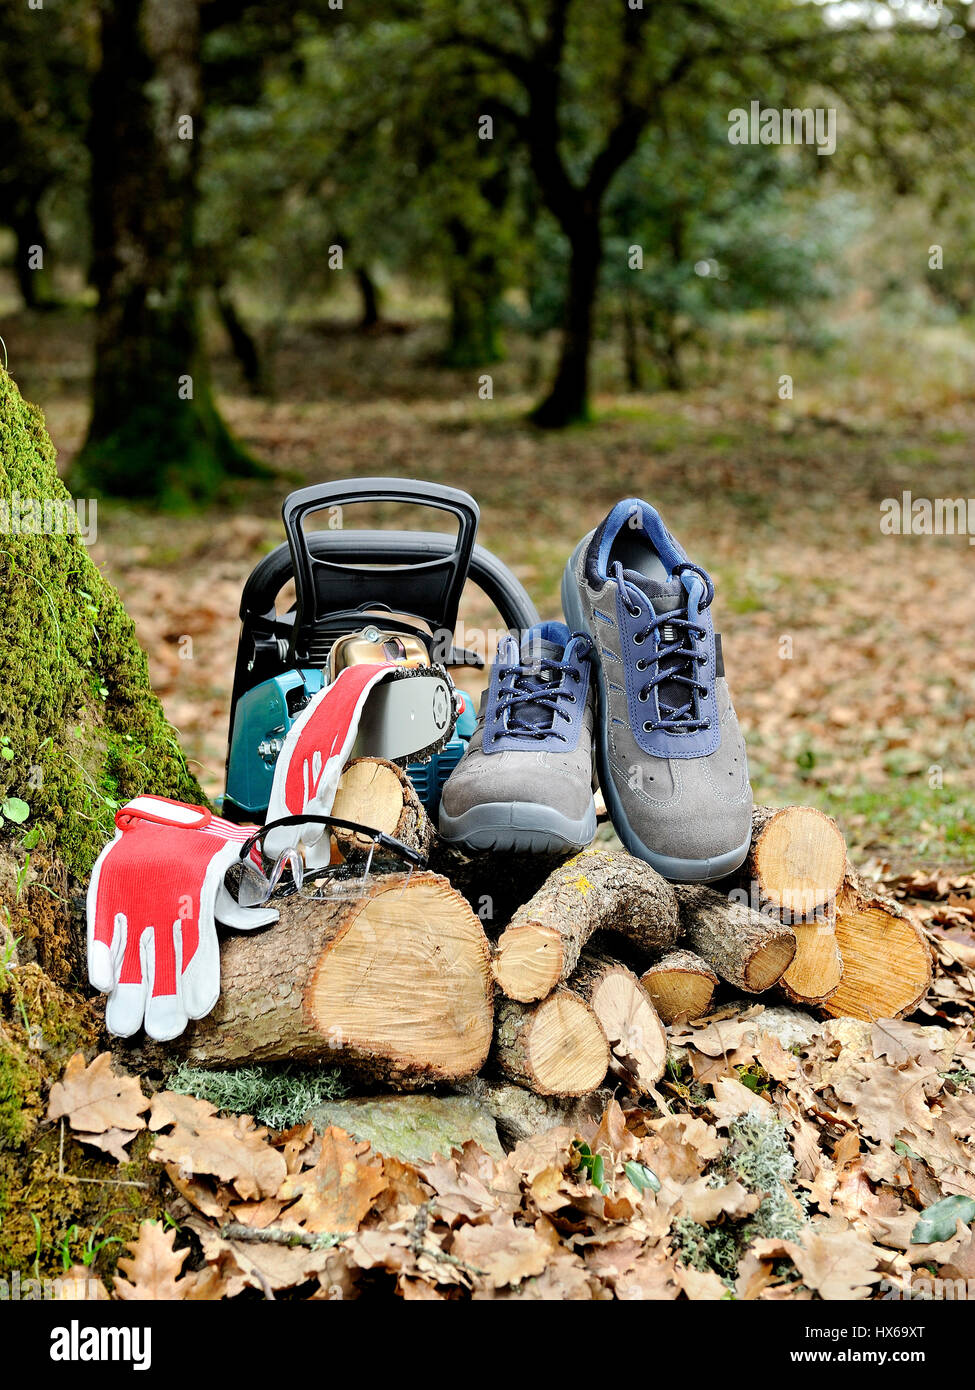 Shoes, protection gloves and glasses to safely use the chainsaw to cut wood in the forest. Stock Photo